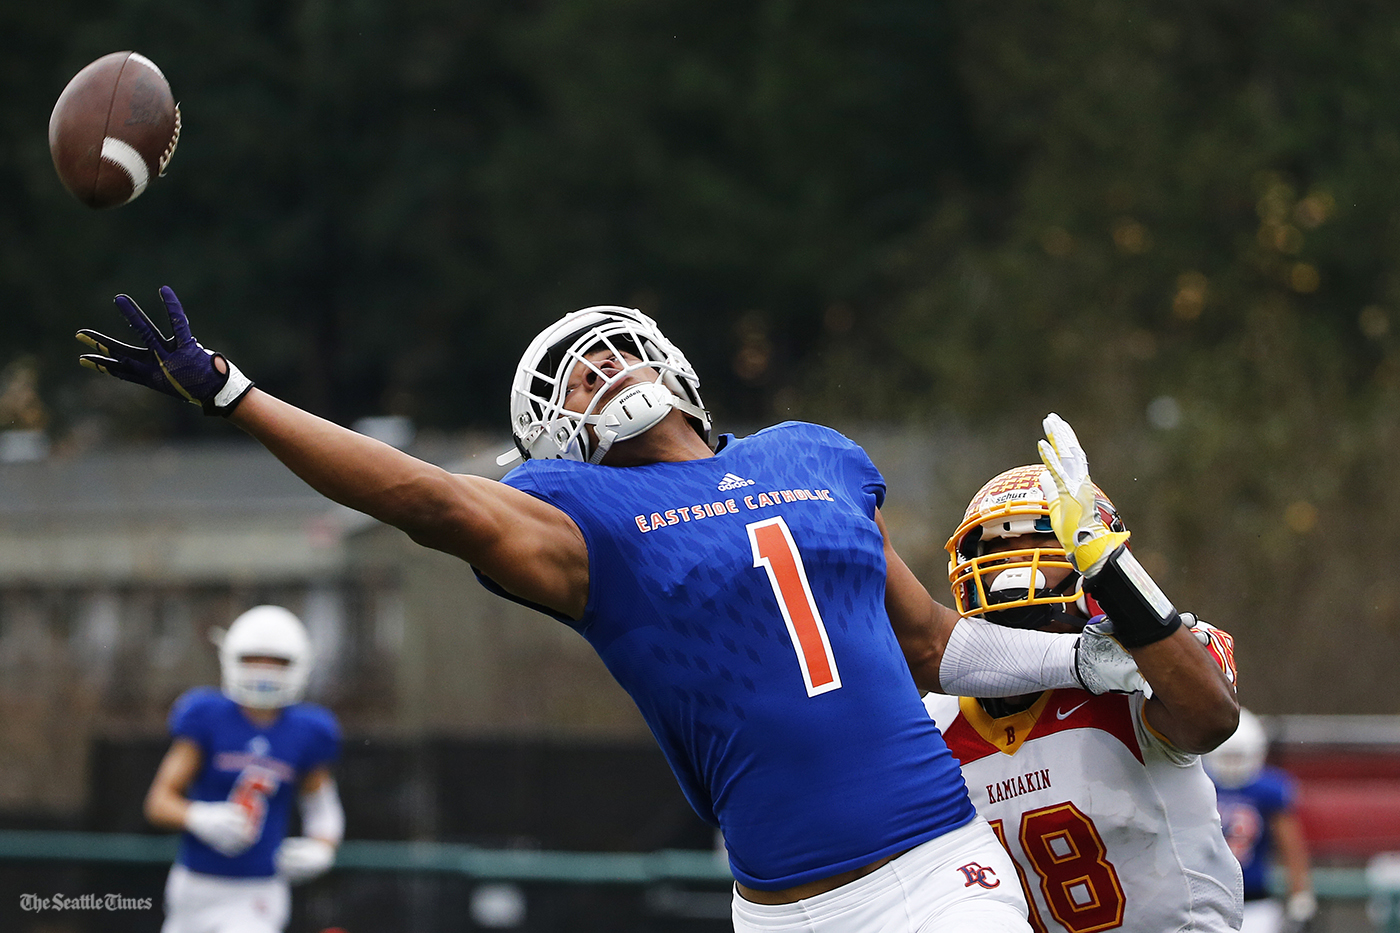 Eastside Catholic Crusader wide receiver Hunter Bryant looks to make a one-handed catch during the first half of their State semifinal game against the Kamiakin Braves held at Pop Keeney Stadium in Bothell on Saturday, November 26, 2016.